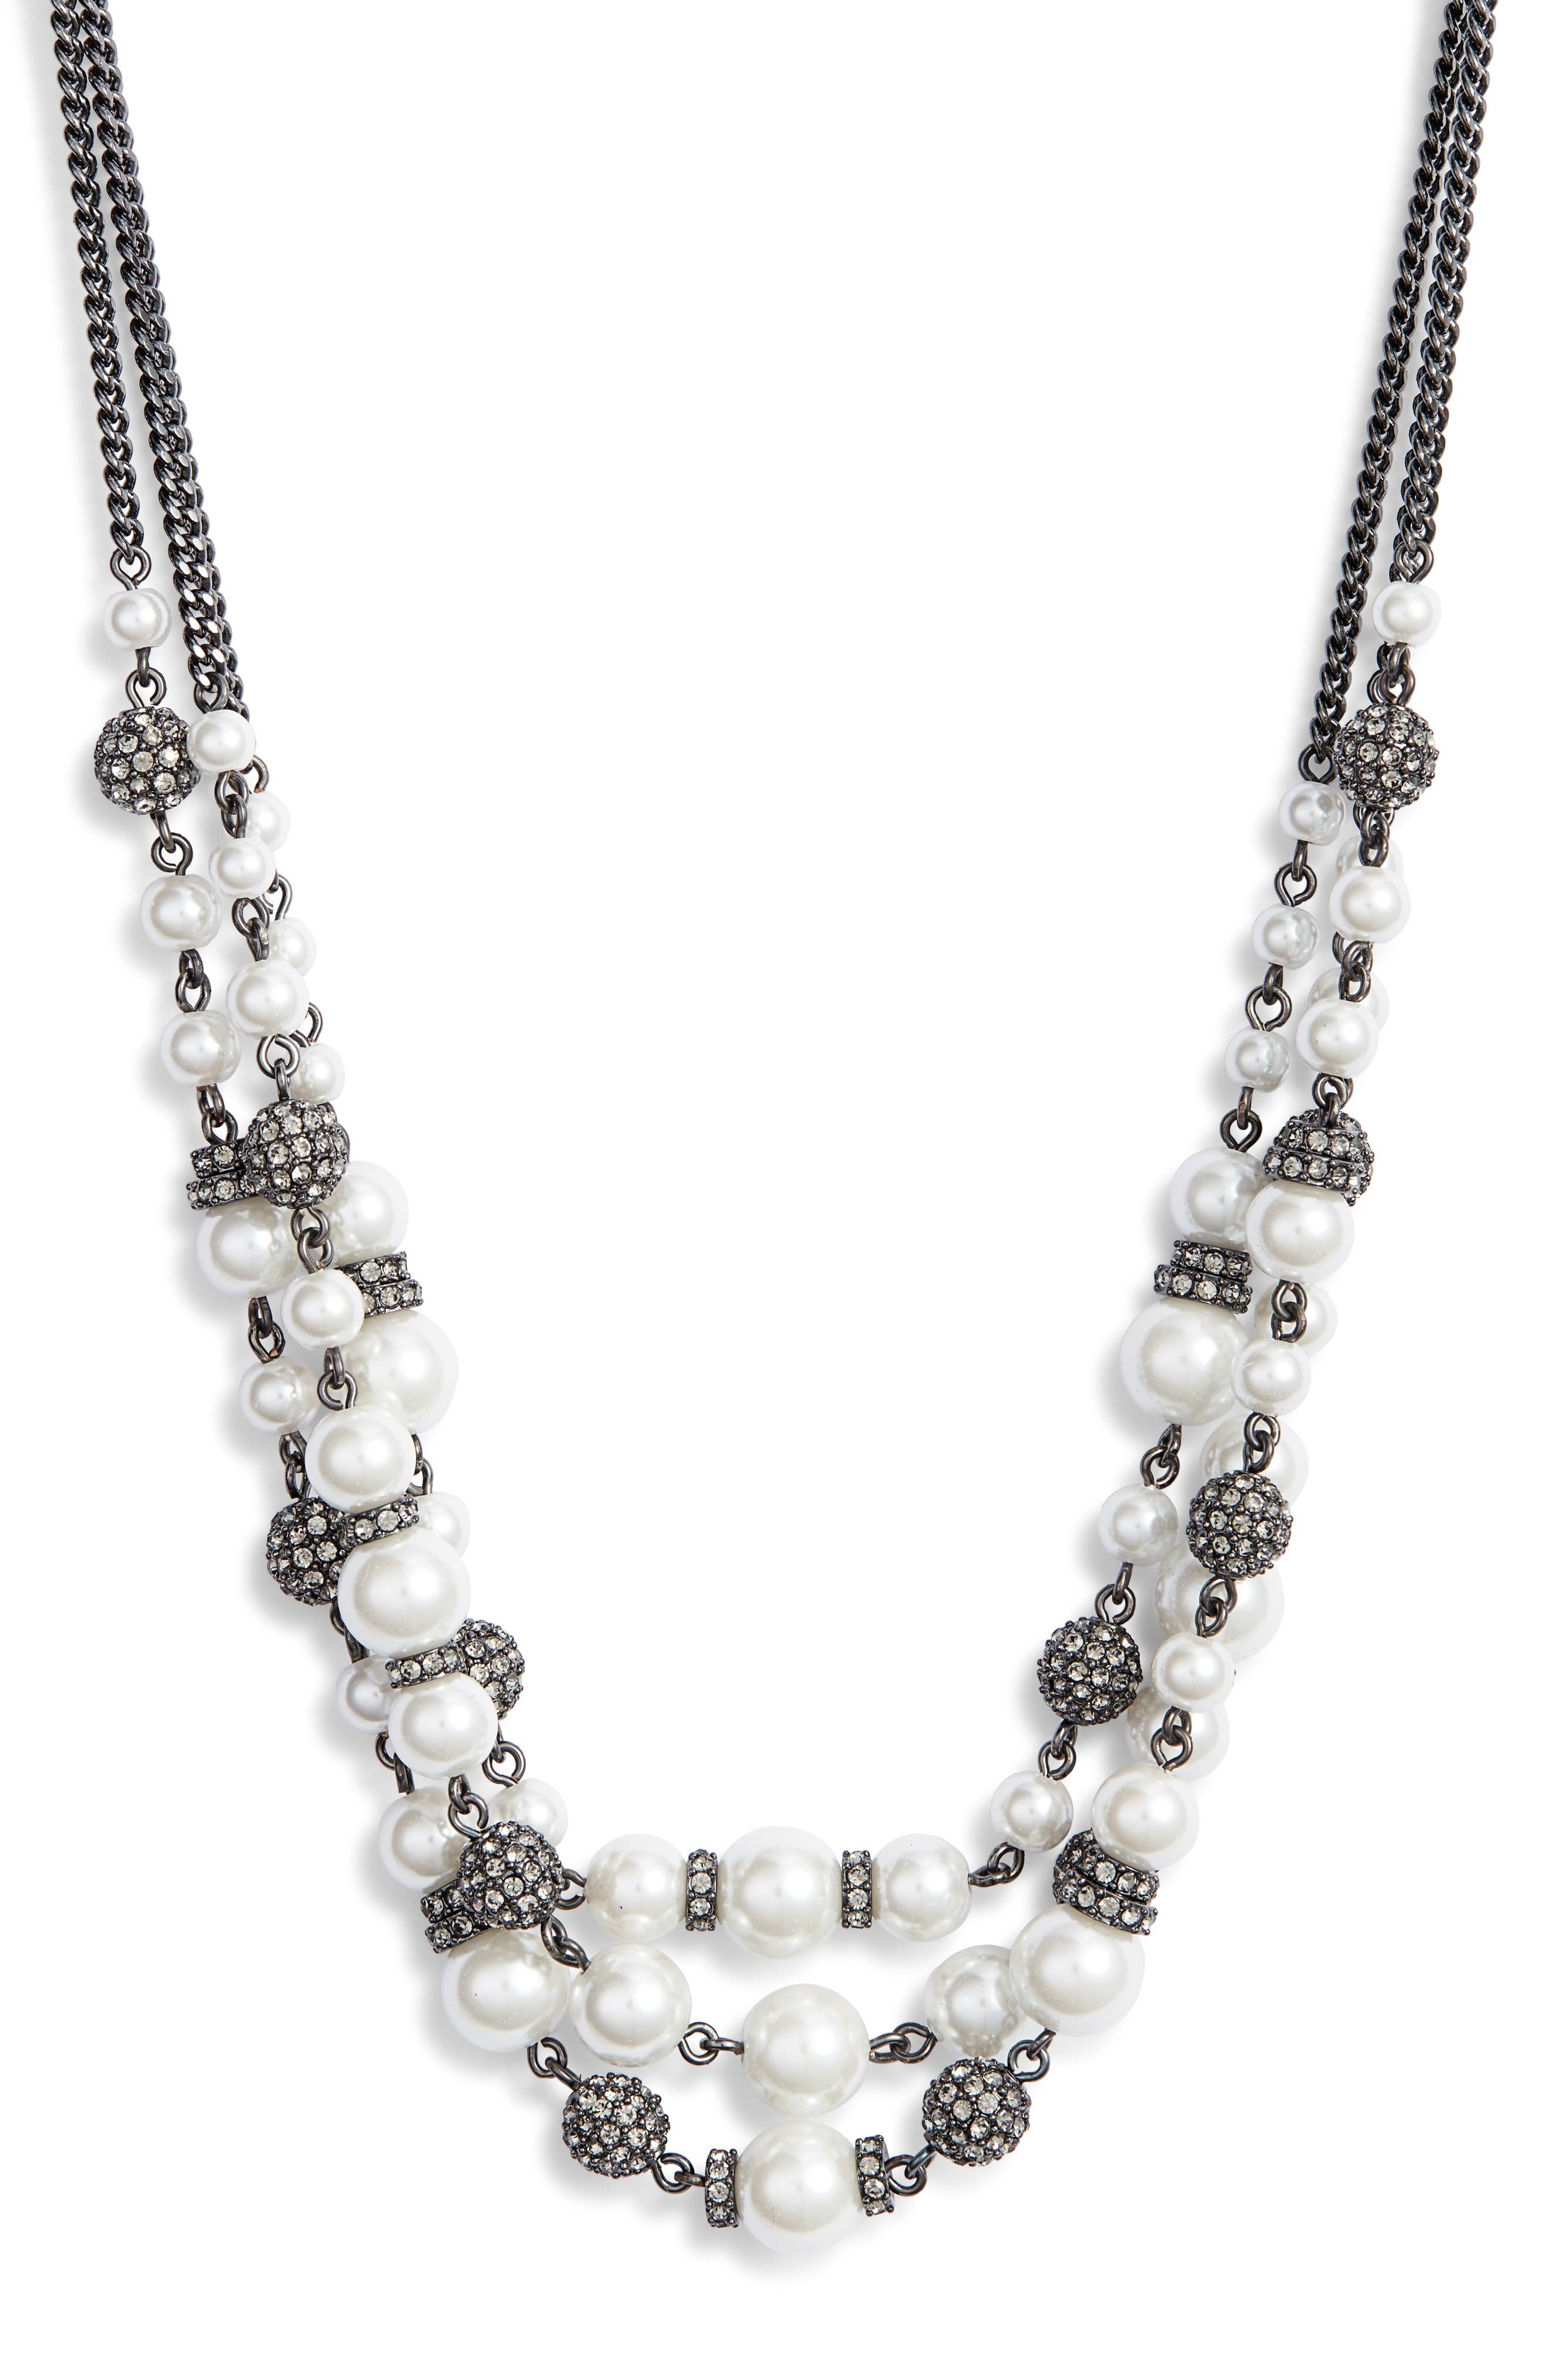 Bead & Crystal Collar Necklace,                             Main thumbnail 1, color,                             WHITE/ HEMATITE